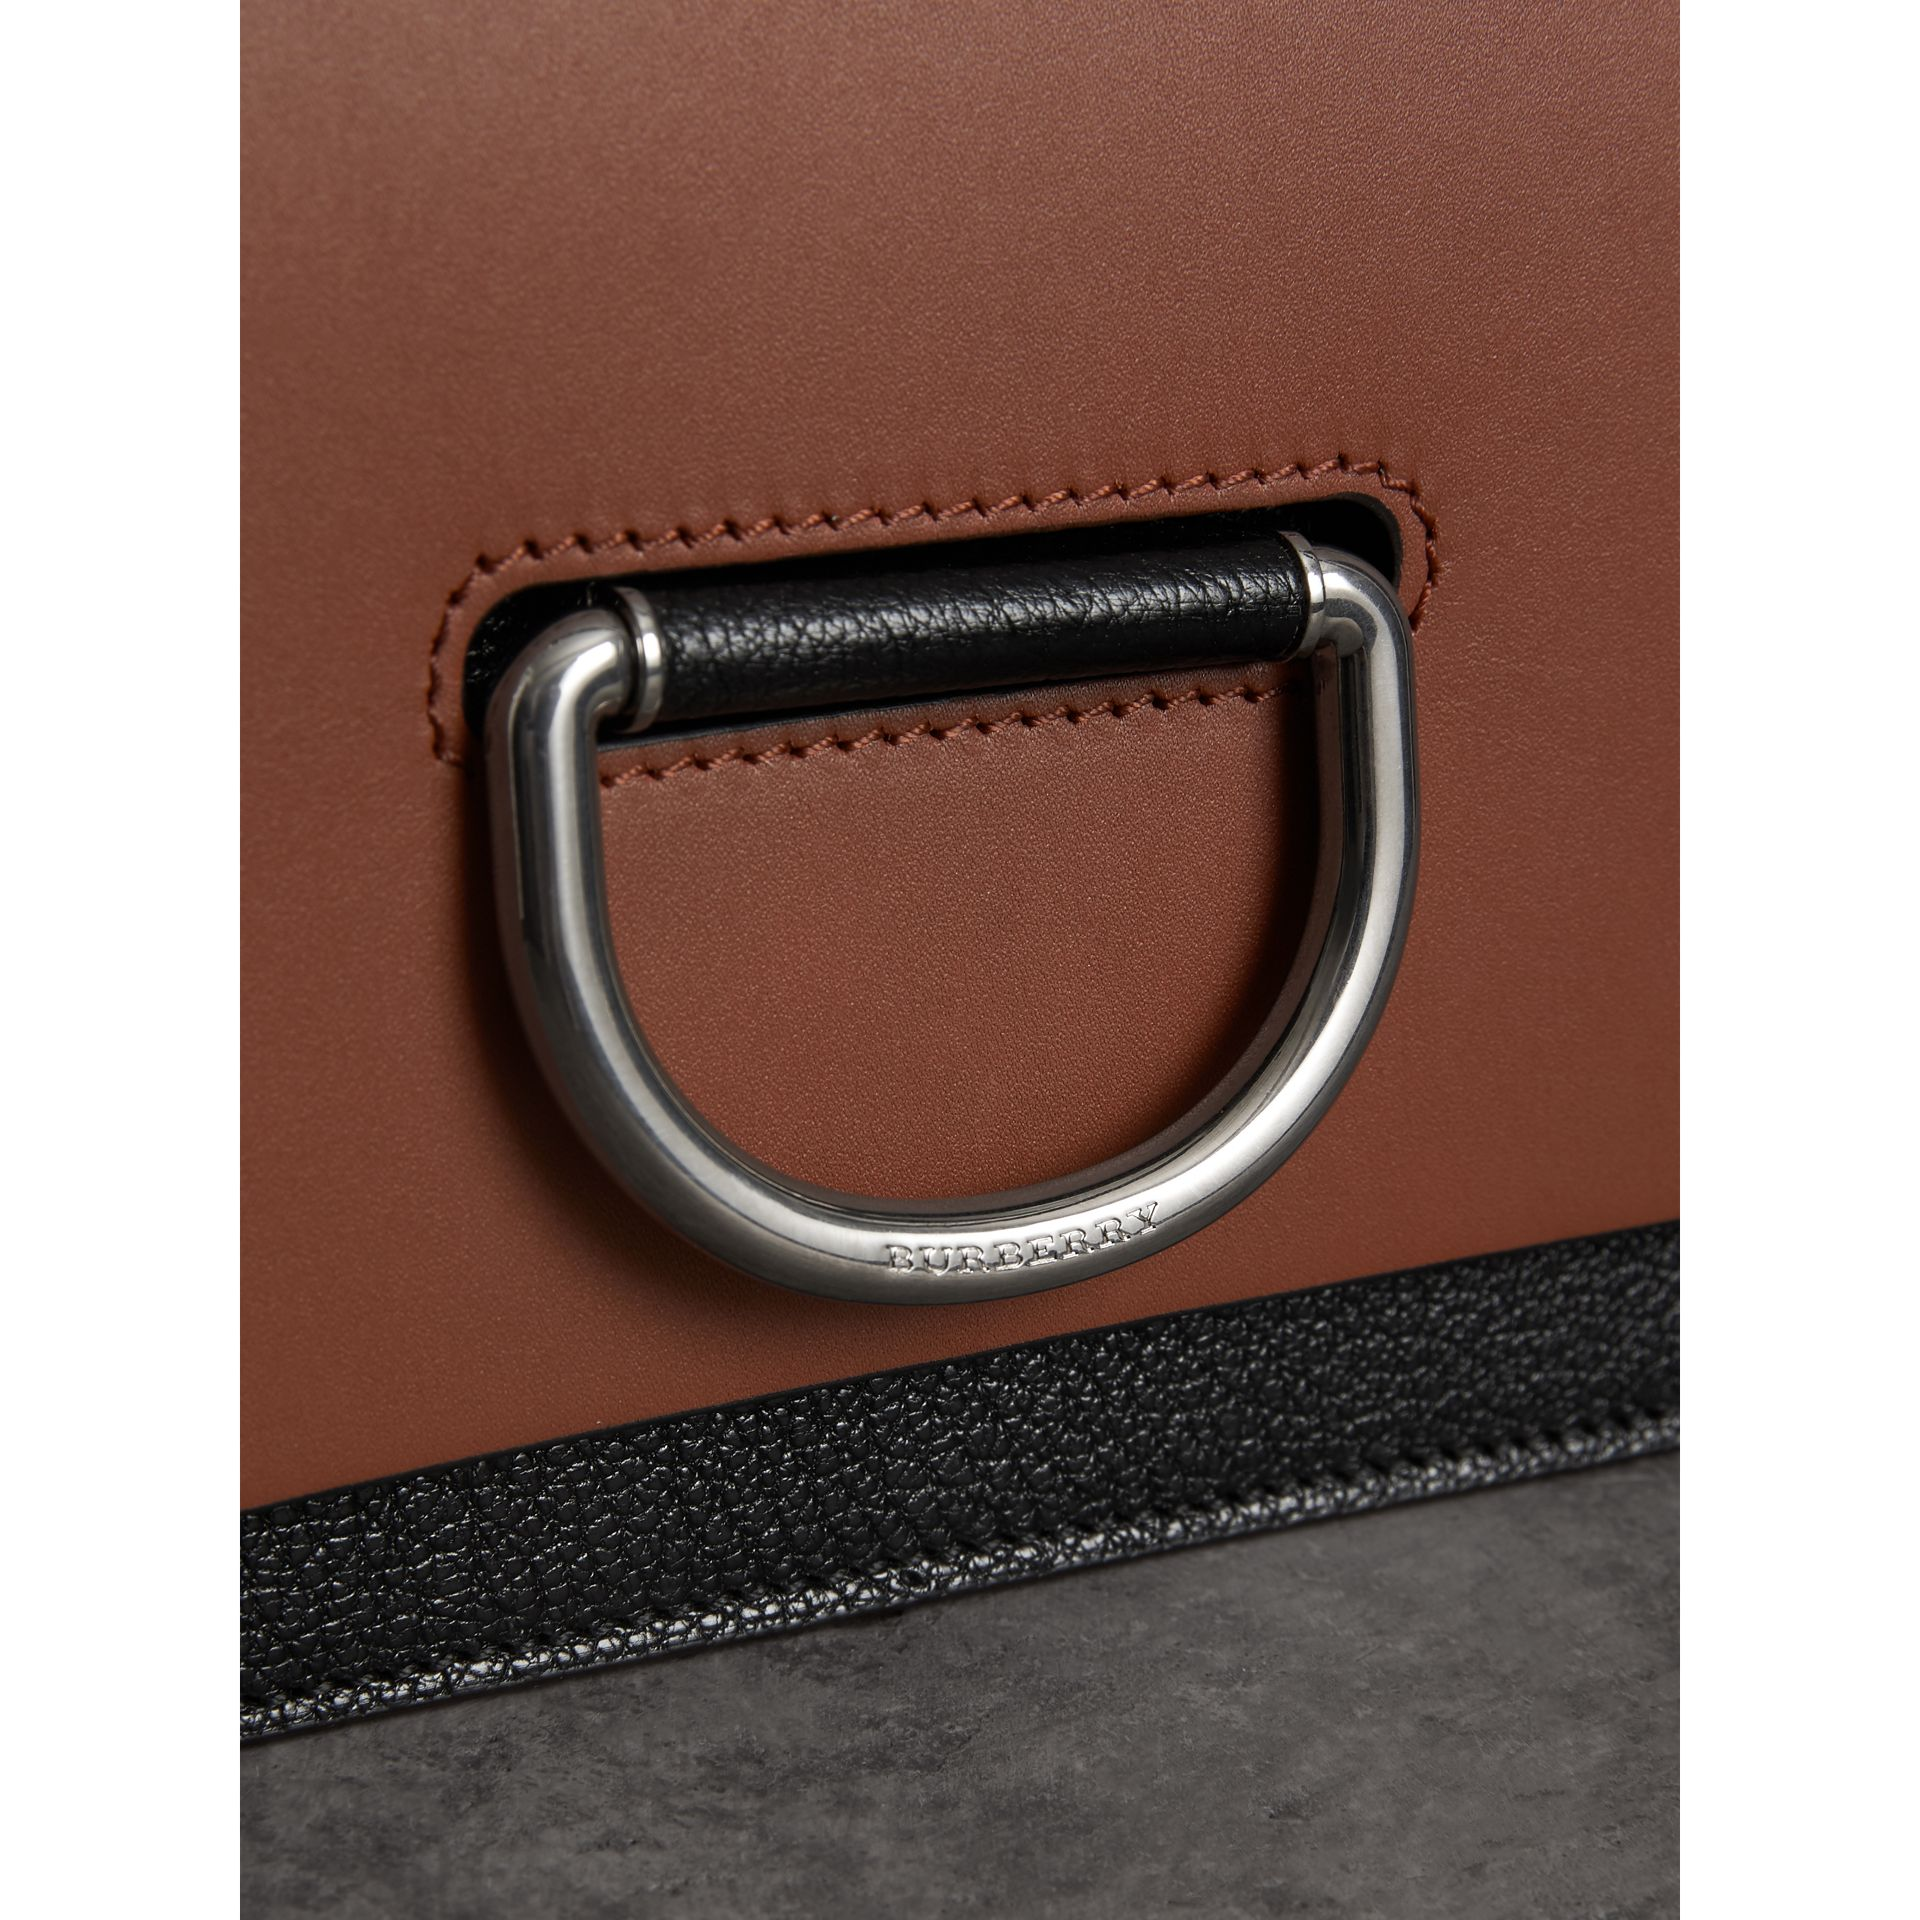 Borsa The D-ring piccola in pelle (Marroncino/nero) - Donna | Burberry - immagine della galleria 1